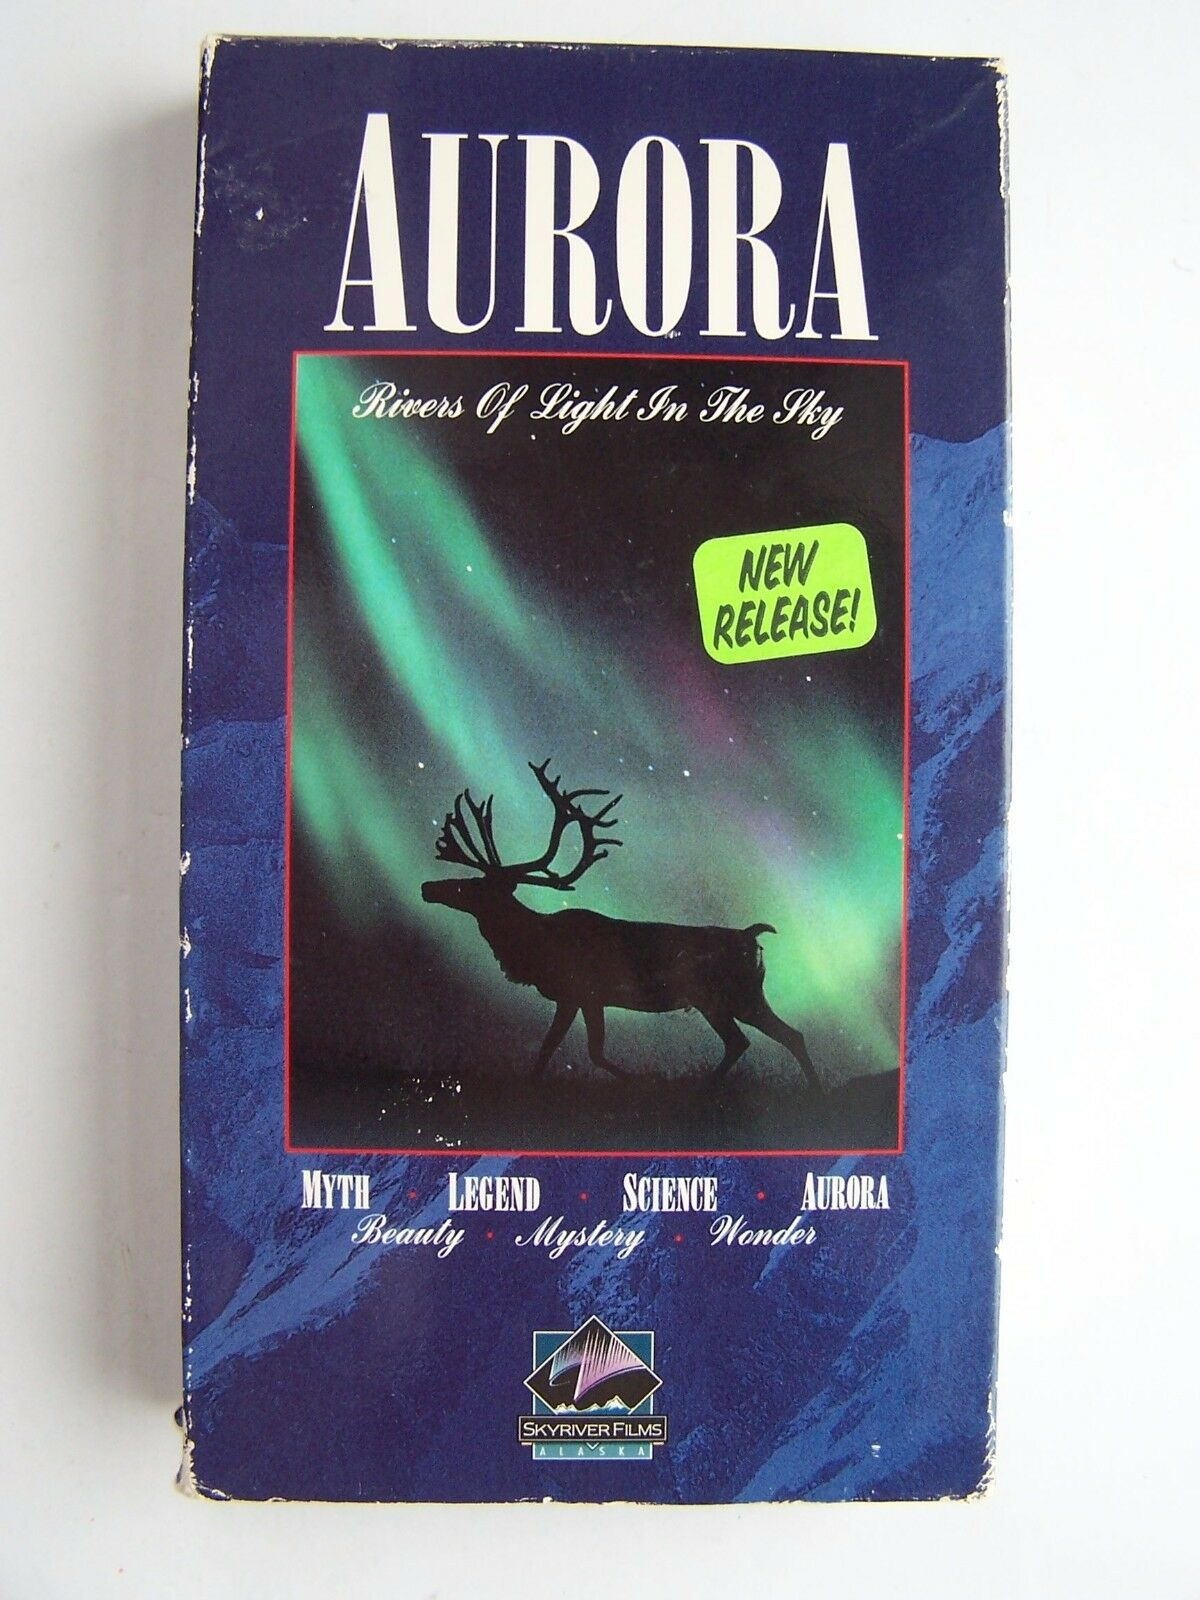 Aurora - Rivers of Light in the Sky VHS Video Tape